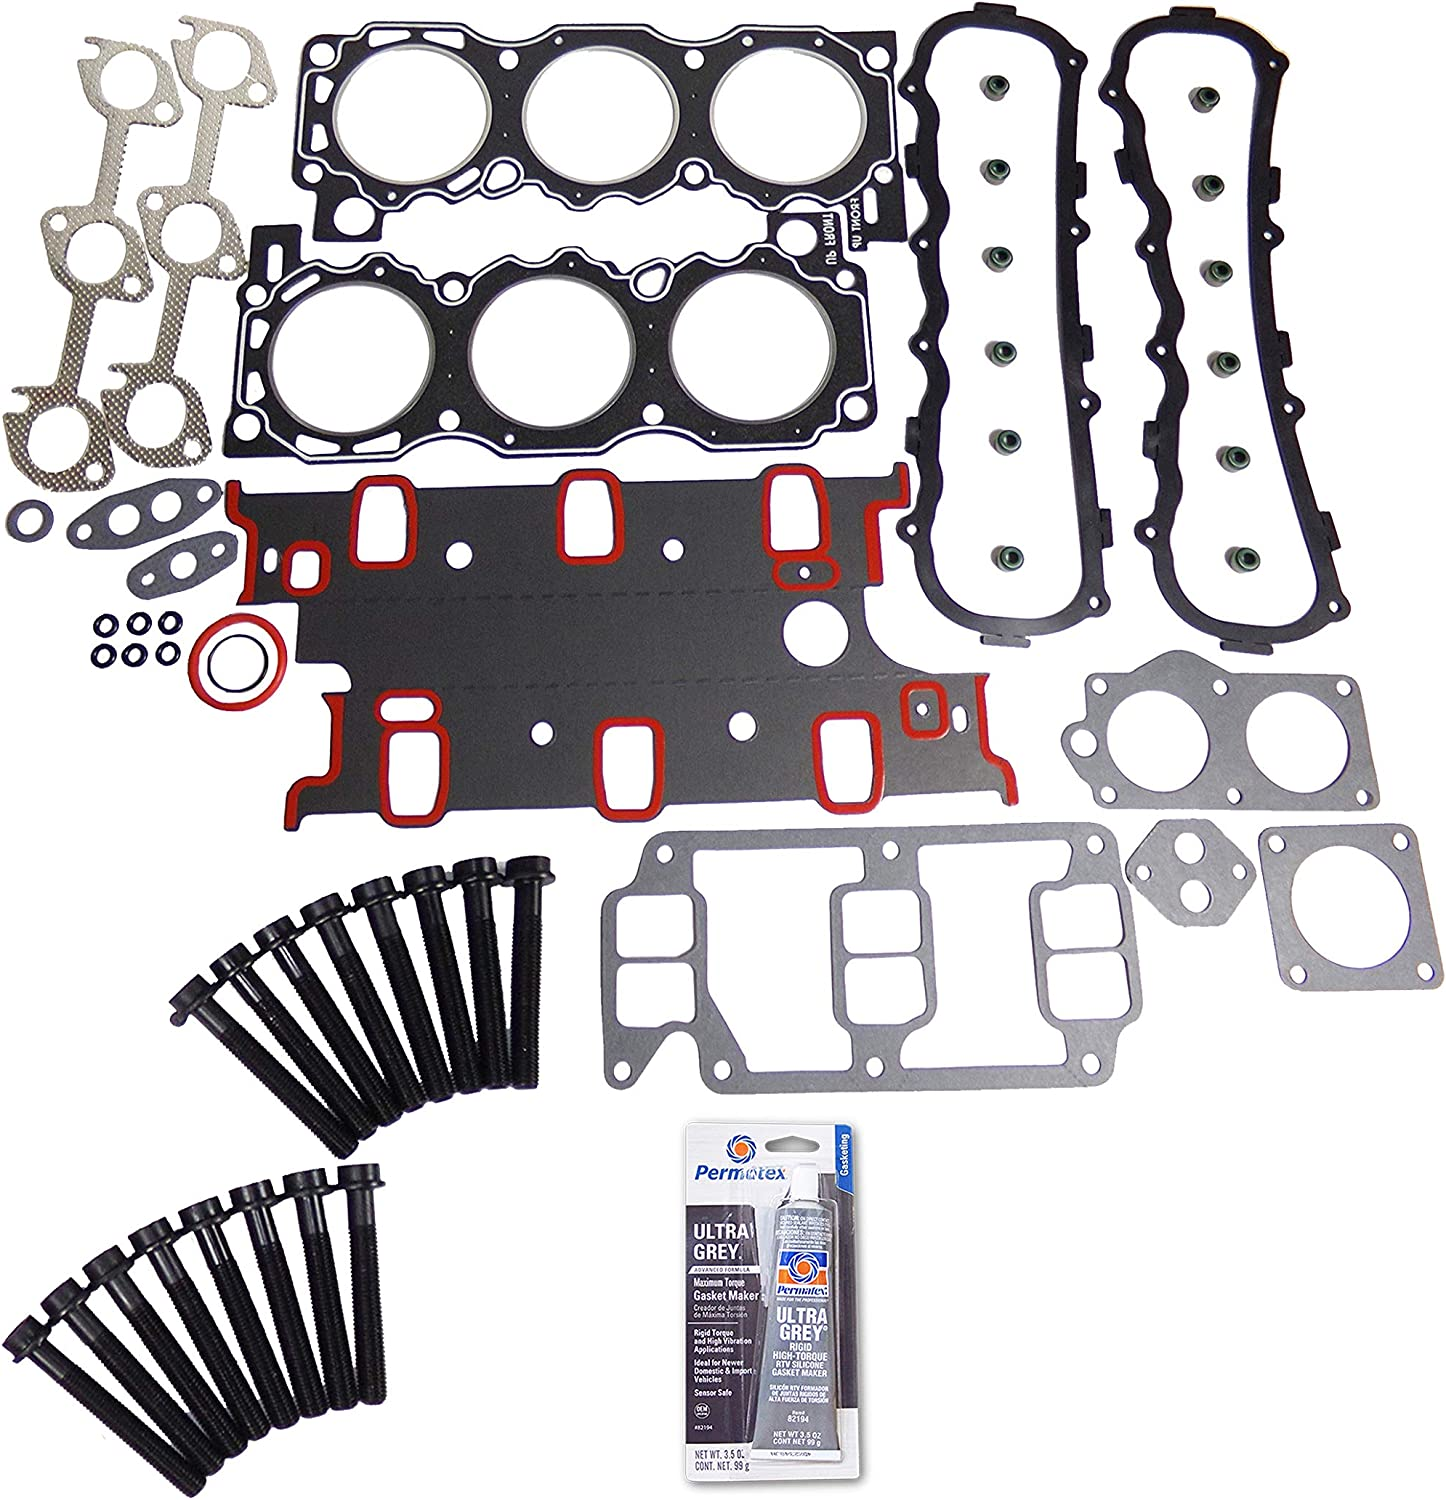 Head Gasket Set Bolt Kit Fits: Our shop OFFers the best service Mesa Mall II Bronco Ranger Ford 2.9L 86-92